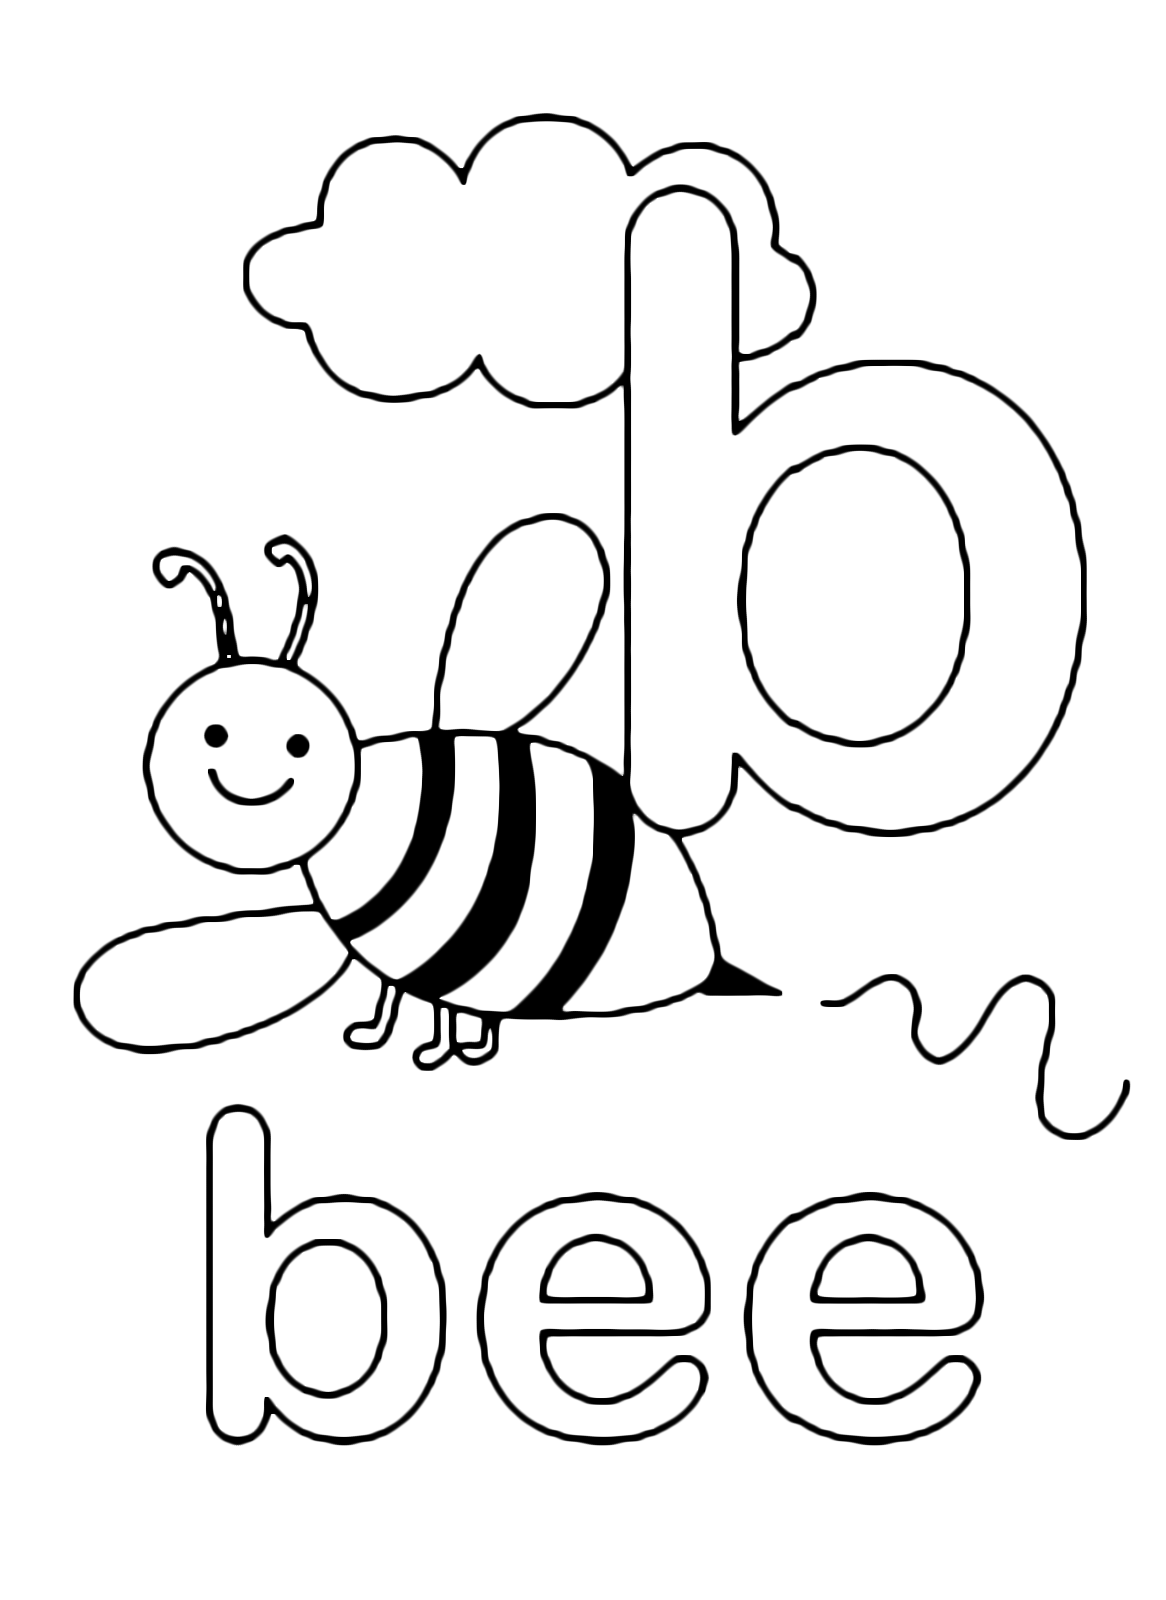 b is for bee coloring page b is for bee bee coloring pages bee printables coloring is for bee page b